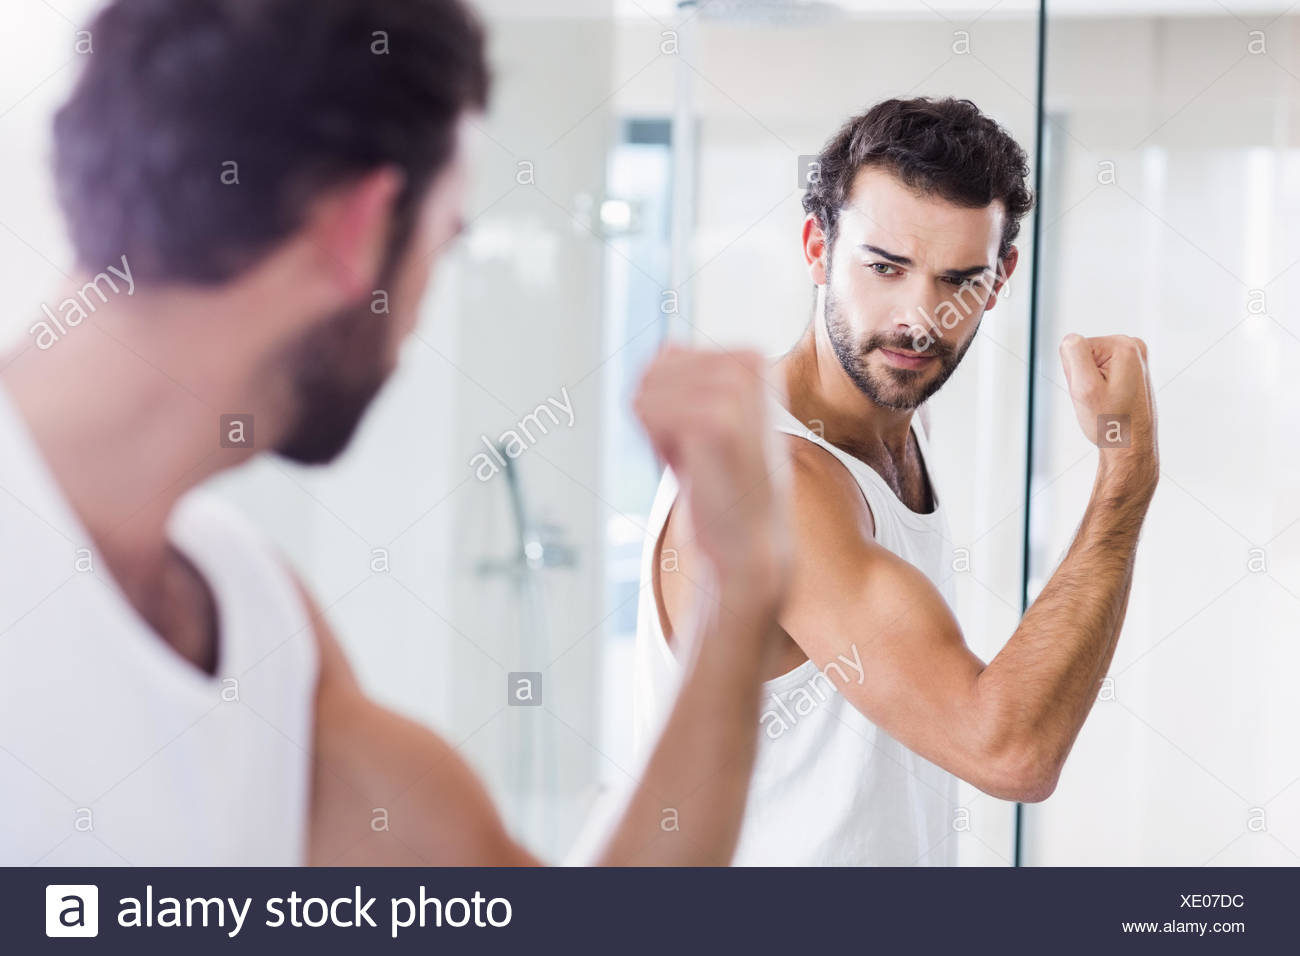 Smiling man looking at his biceps in mirror - Stock Image